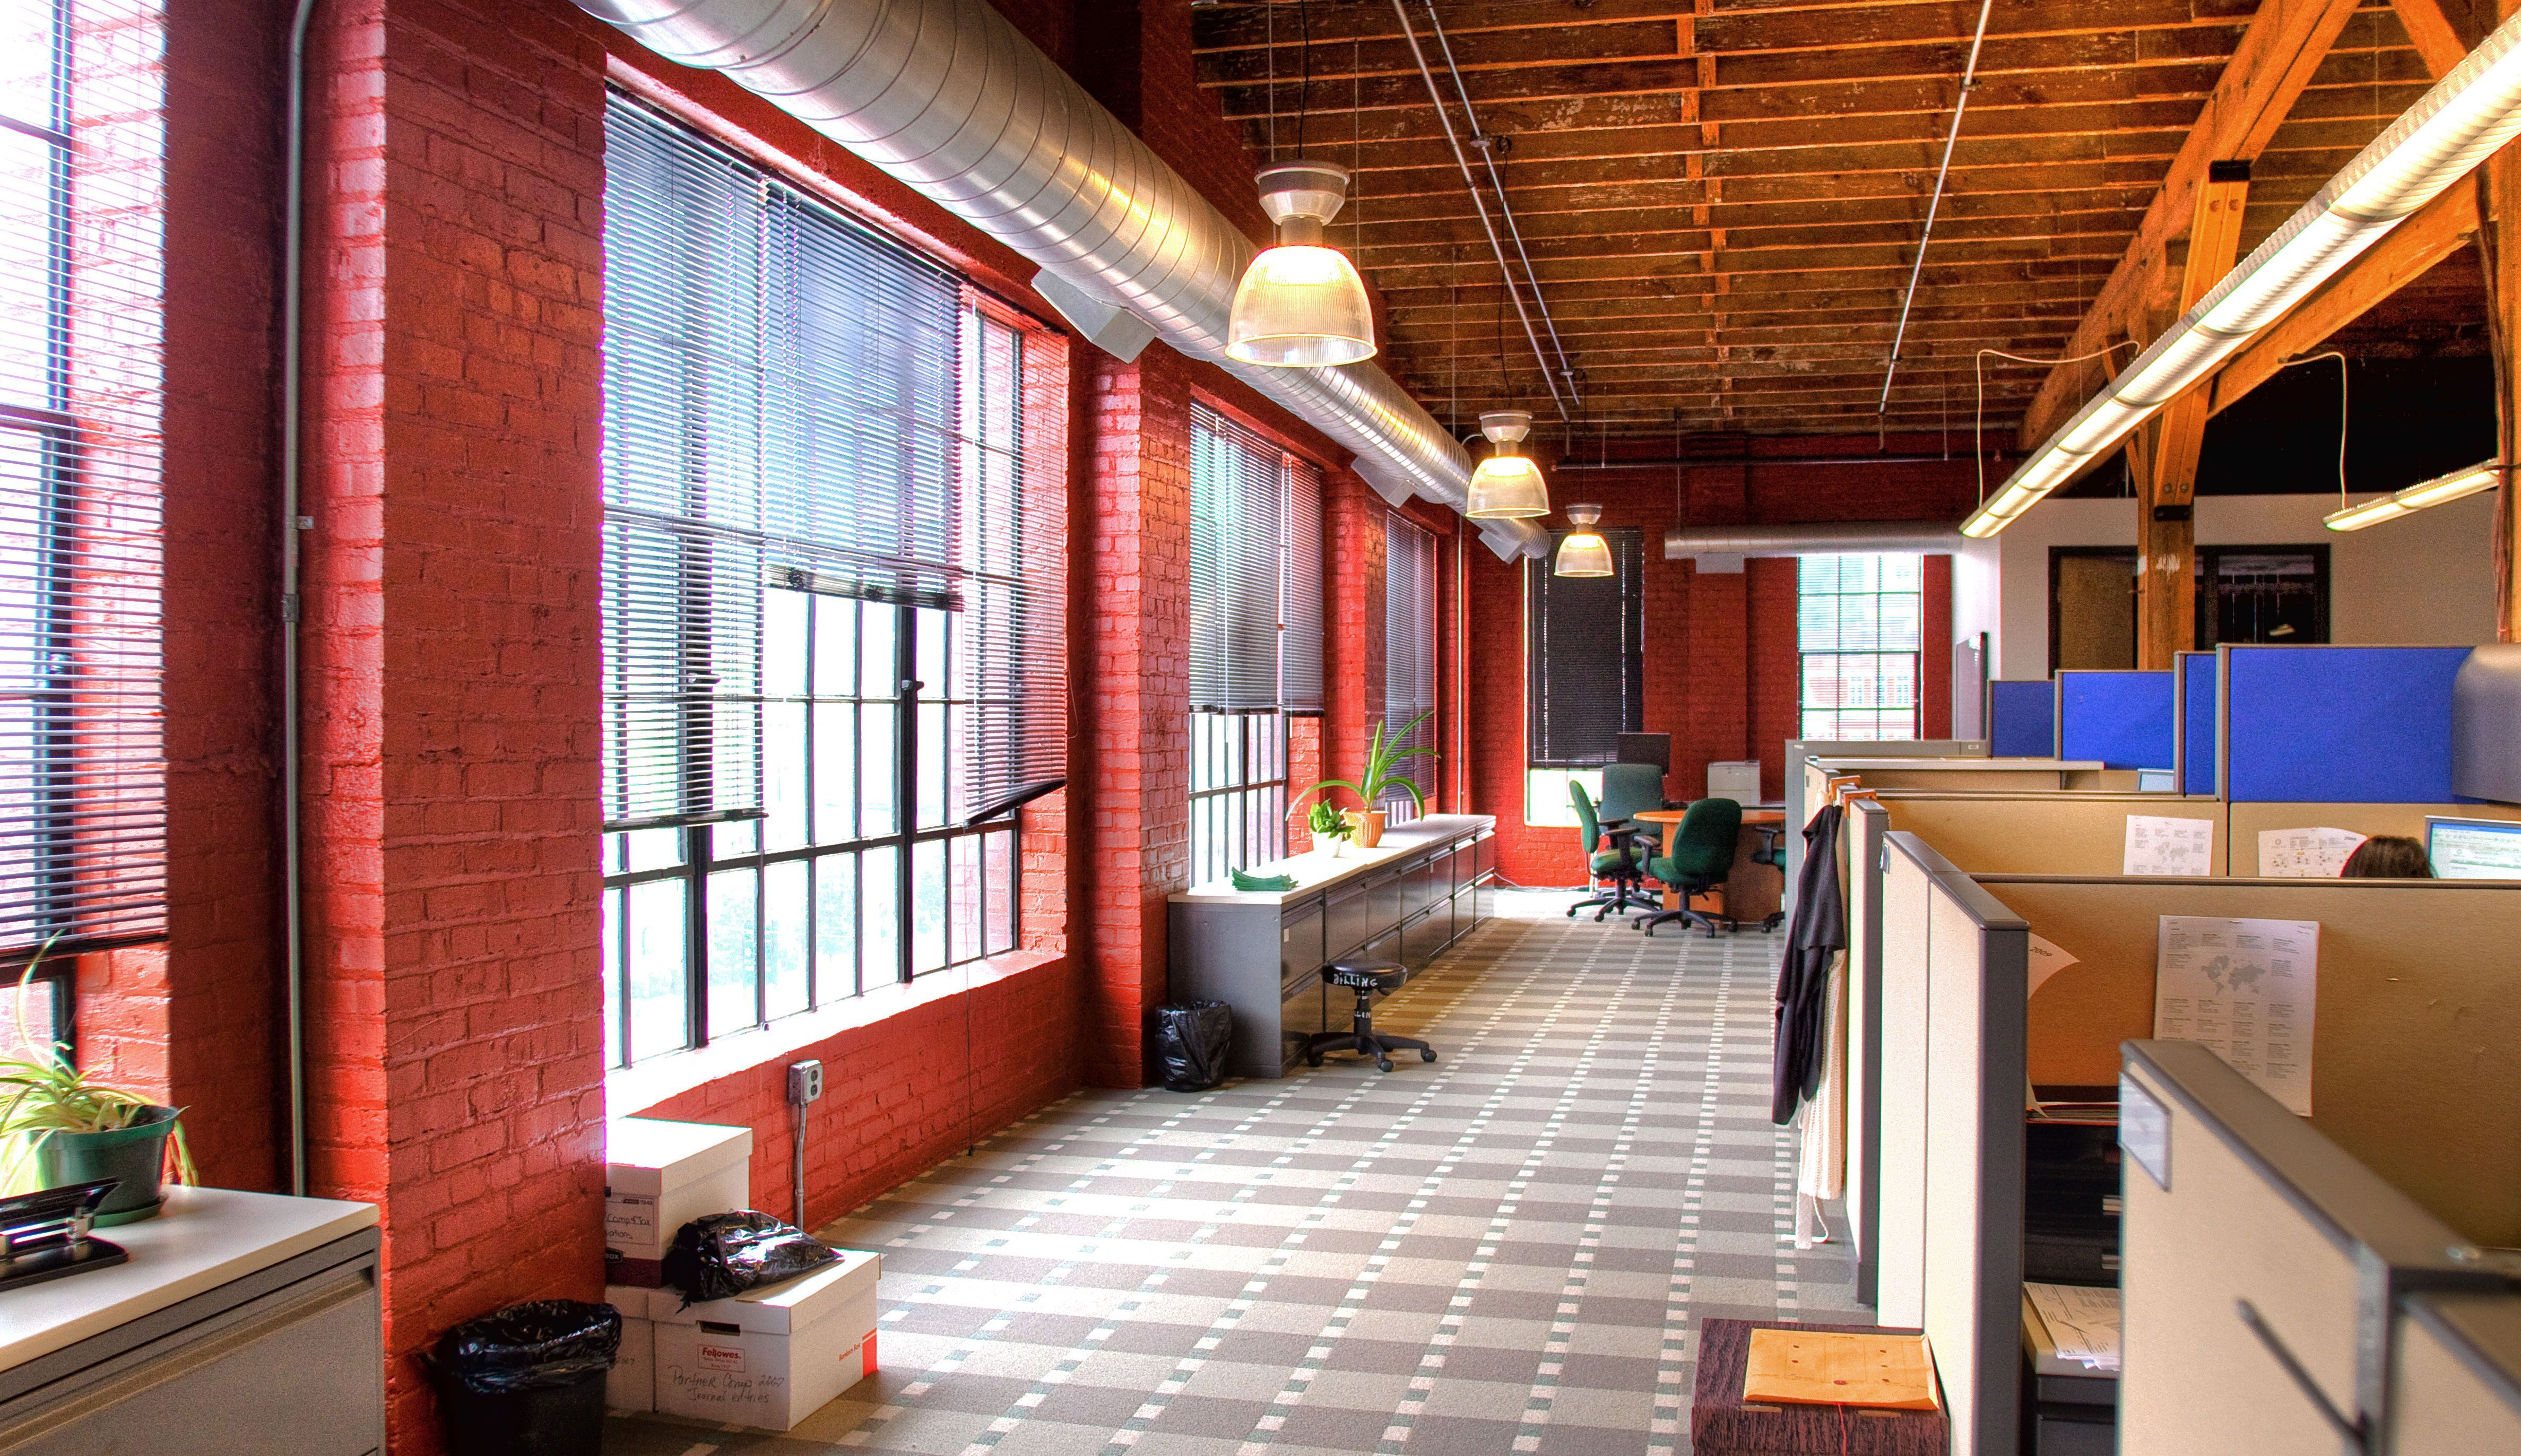 activision blizzard coolest offices 2016. Activision Blizzard Coolest Offices 2016. The 18 Of 100 Best Companies To Work 2016 R